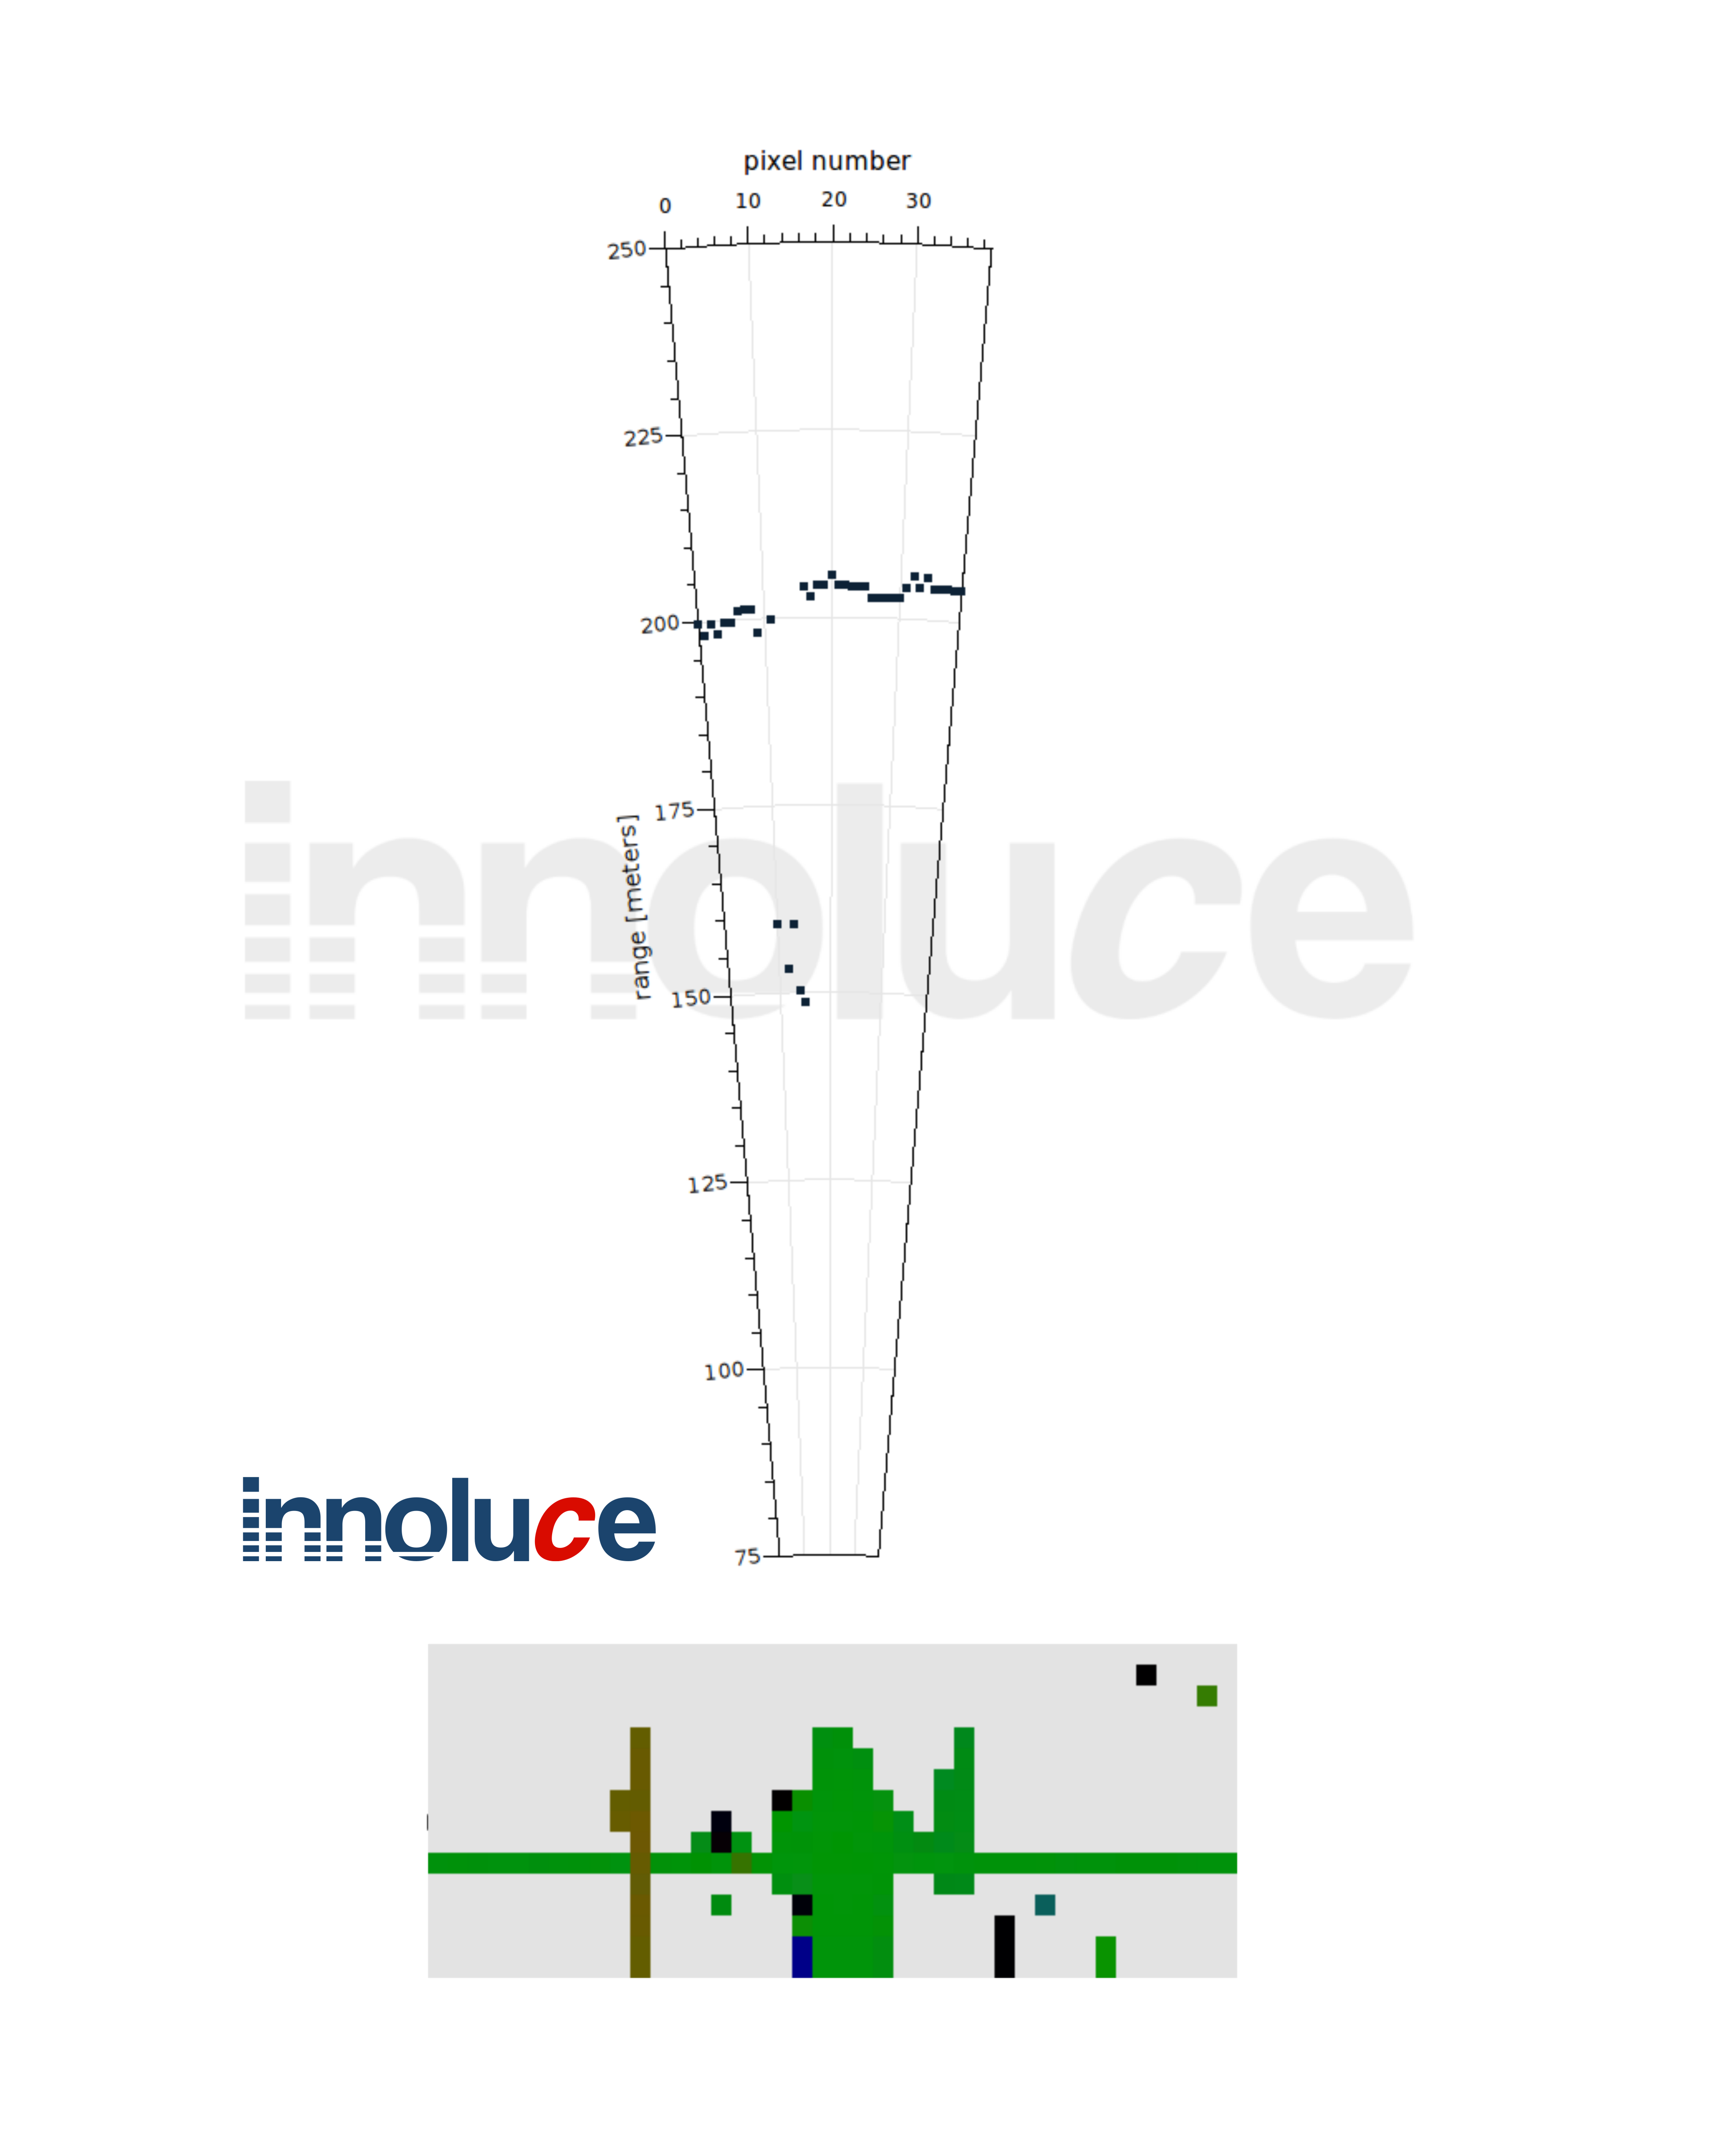 Innoluce achieves 250 meter target range at 0 1° resolution to